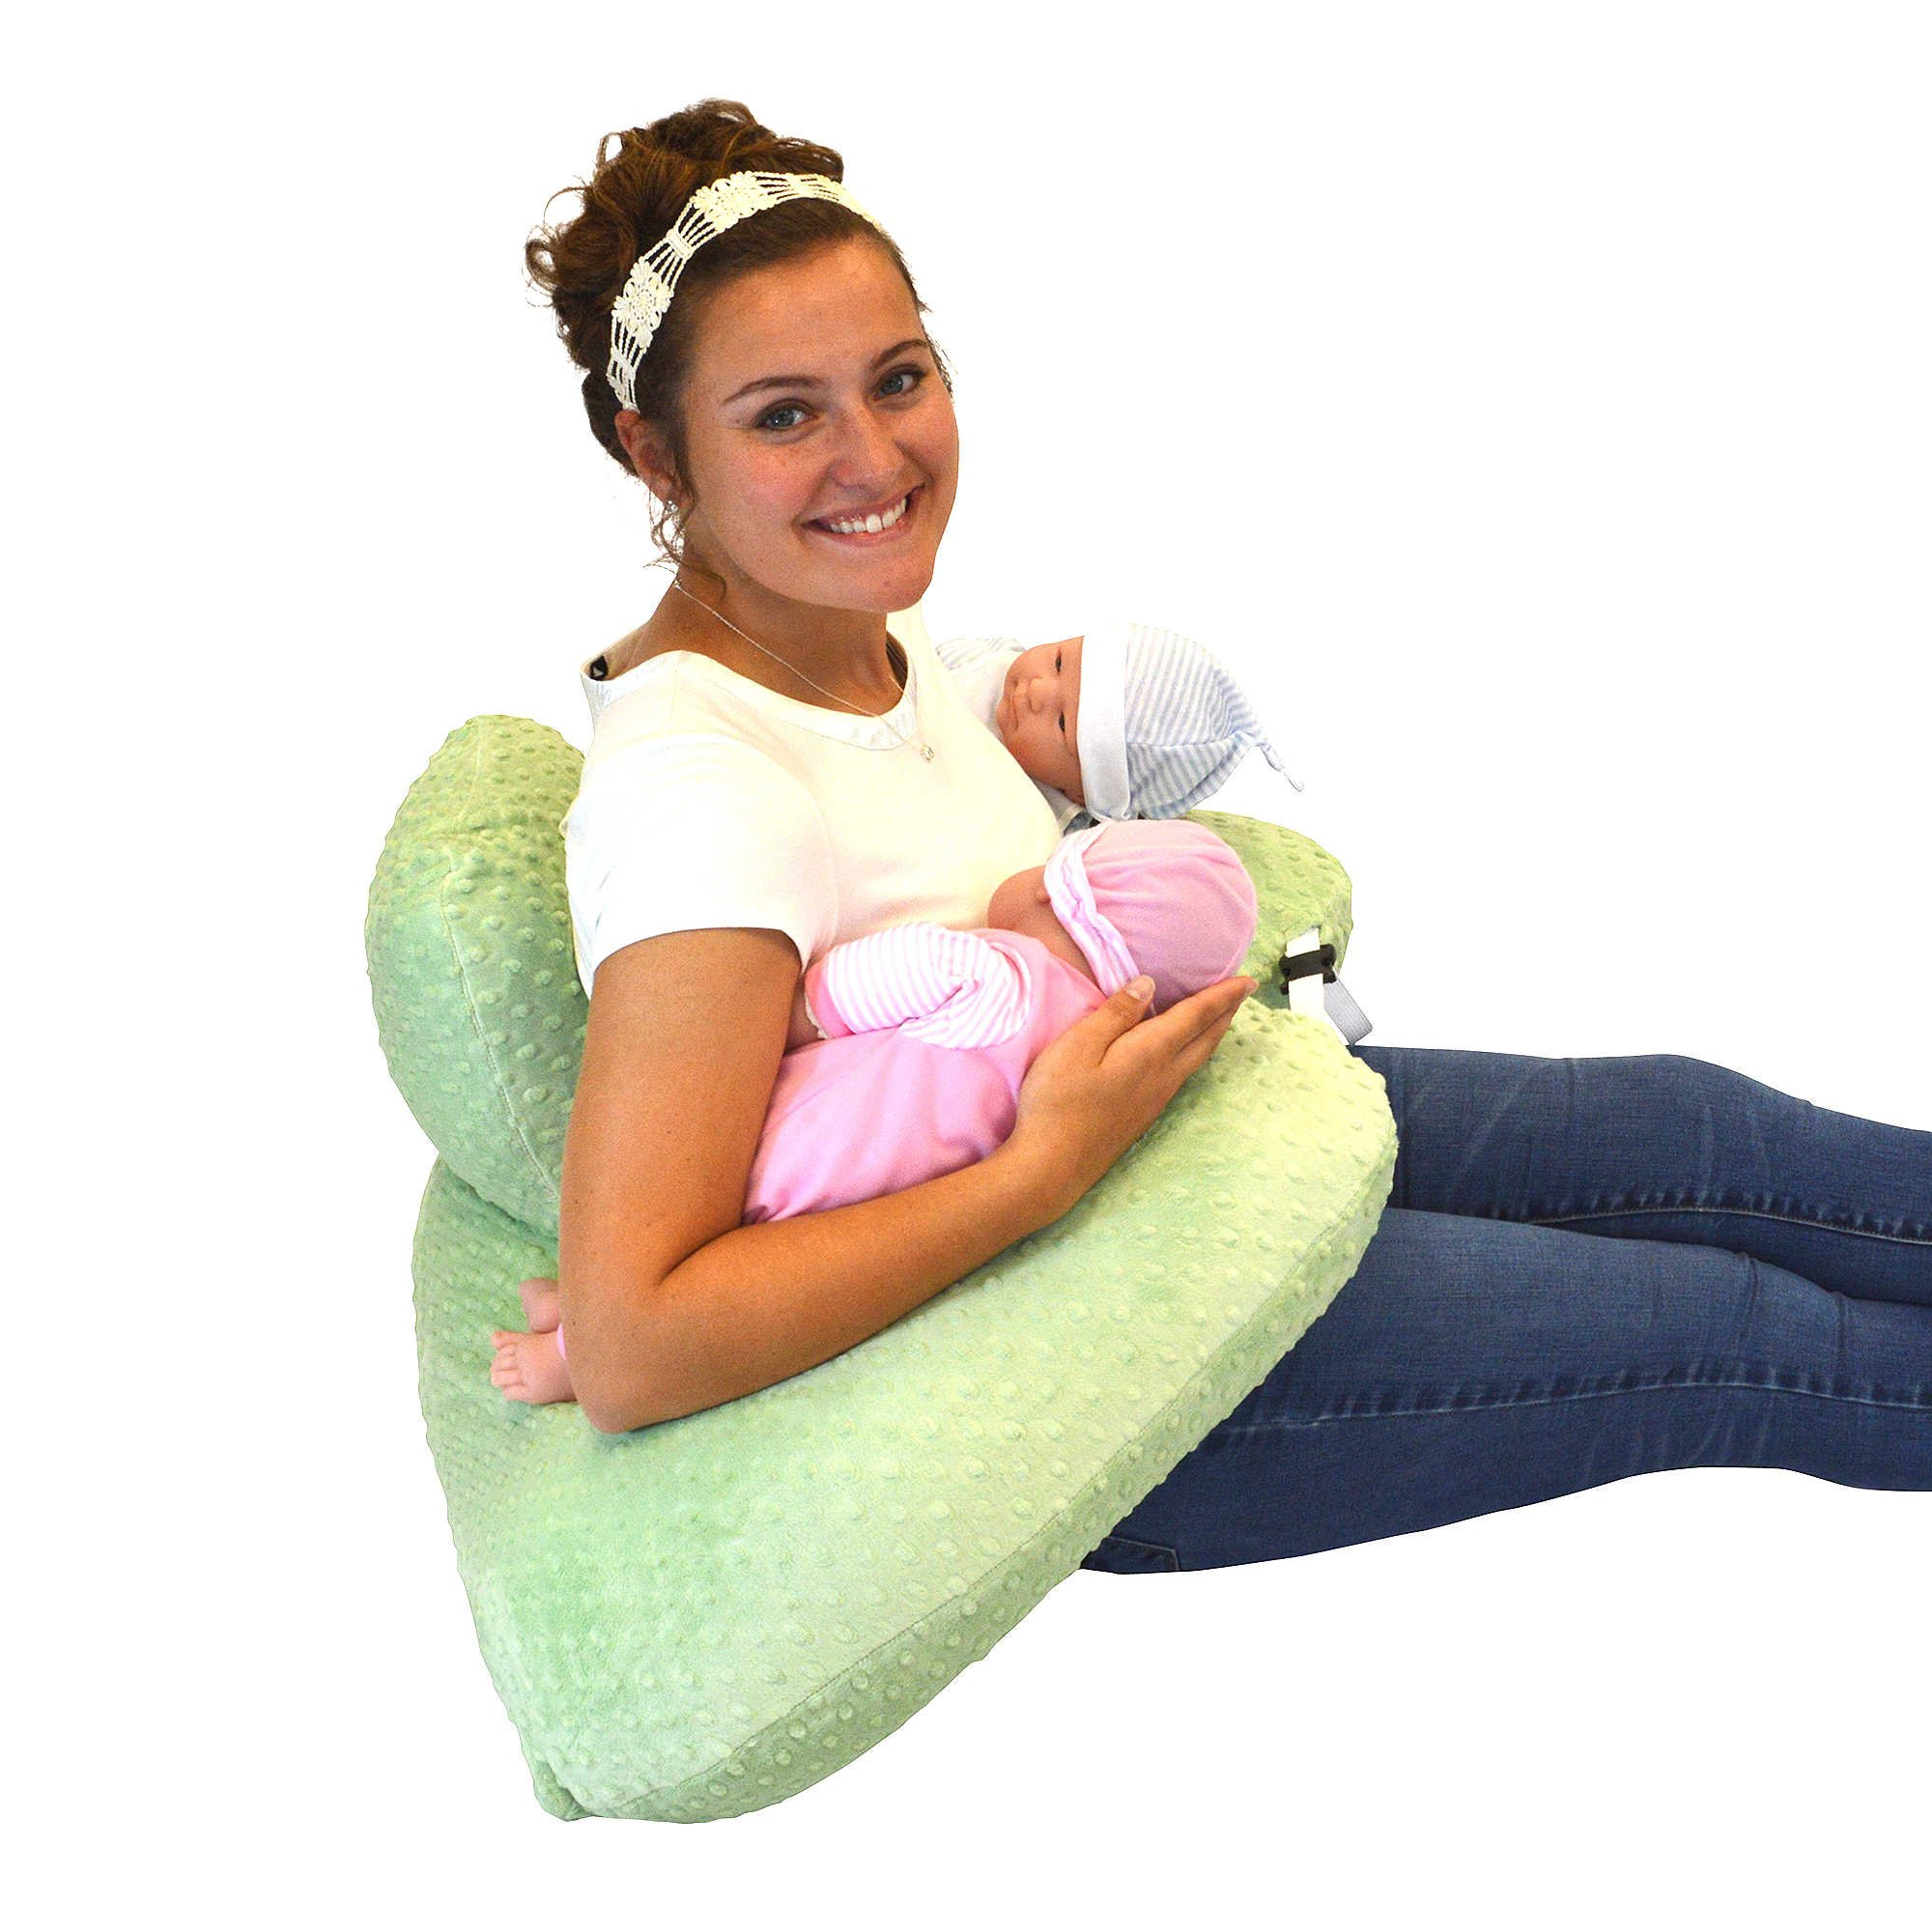 Twin Z Pillow + 1 Designer Anchors Cover + FREE Travel Bag! by Twin Z Pillow (Image #2)